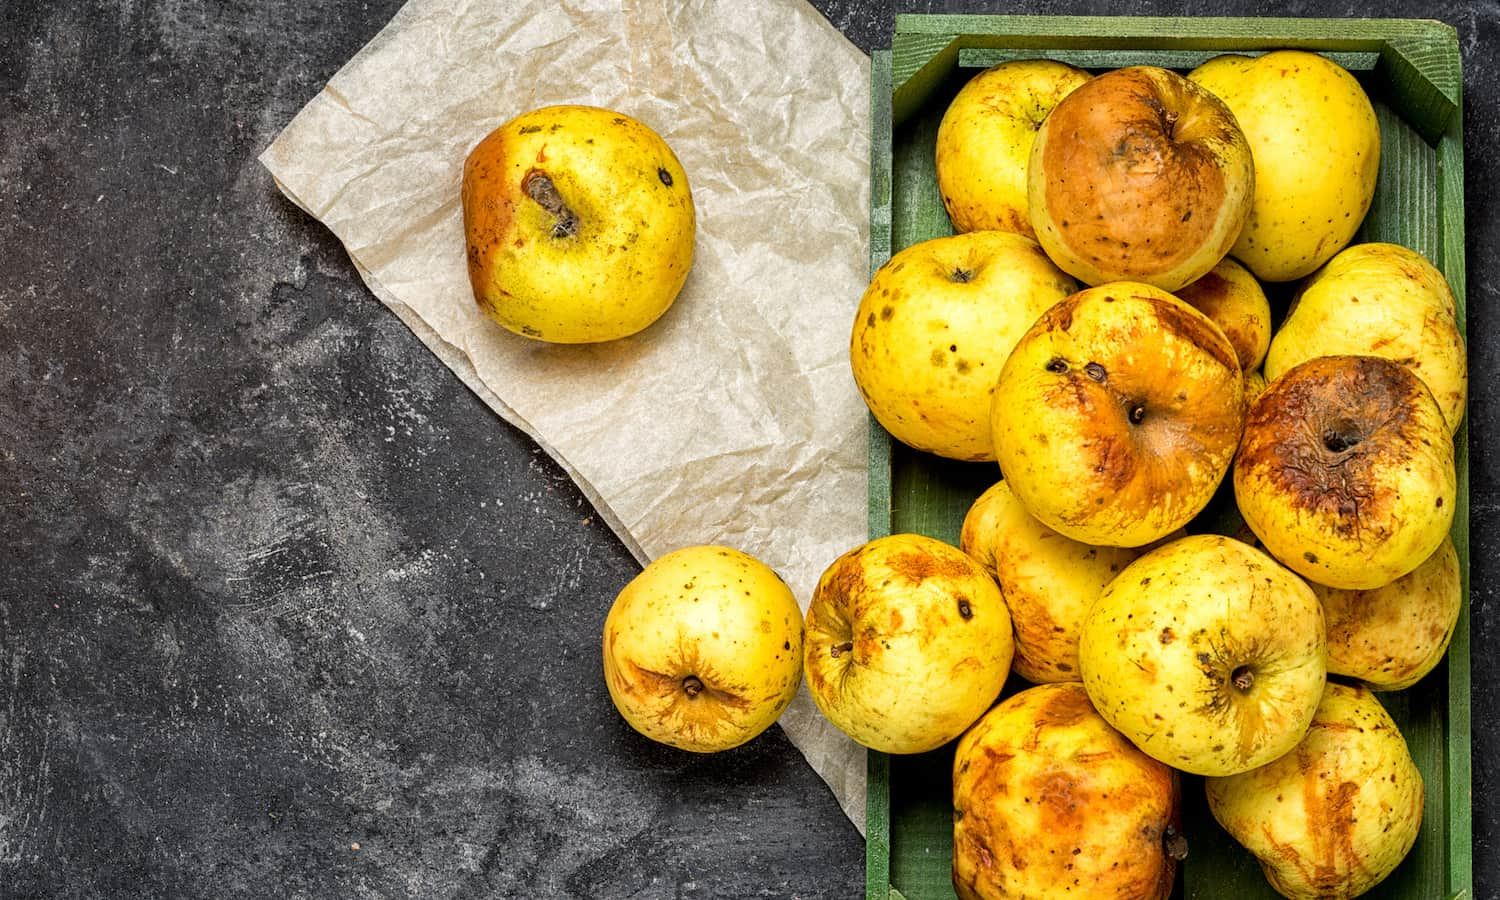 There is an ongoing revolution in food packaging technologies. Can small-scale farmers take advantage of these advances to reduce post-harvest food loss?